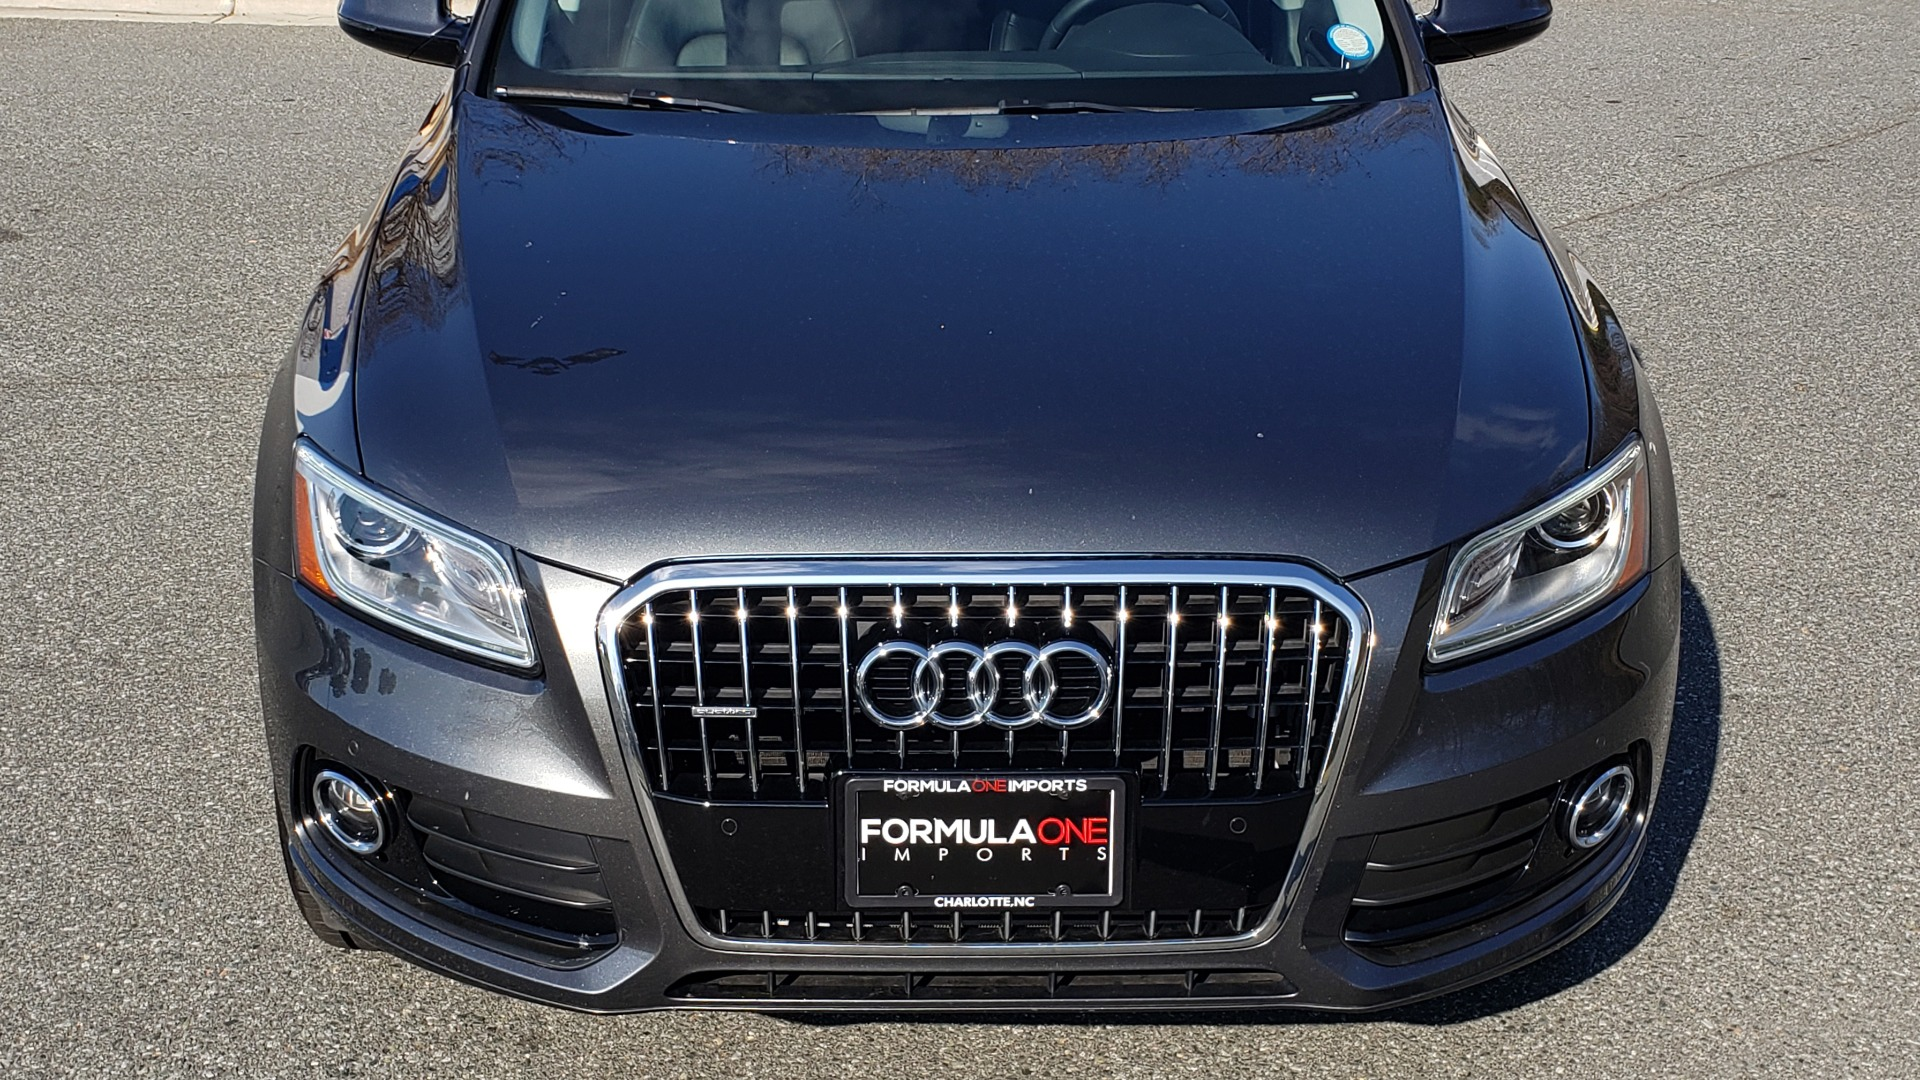 Used 2017 Audi Q5 PREMIUM PLUS / TECH / NAV / PANO / REARVIEW / B&O SND for sale Sold at Formula Imports in Charlotte NC 28227 14